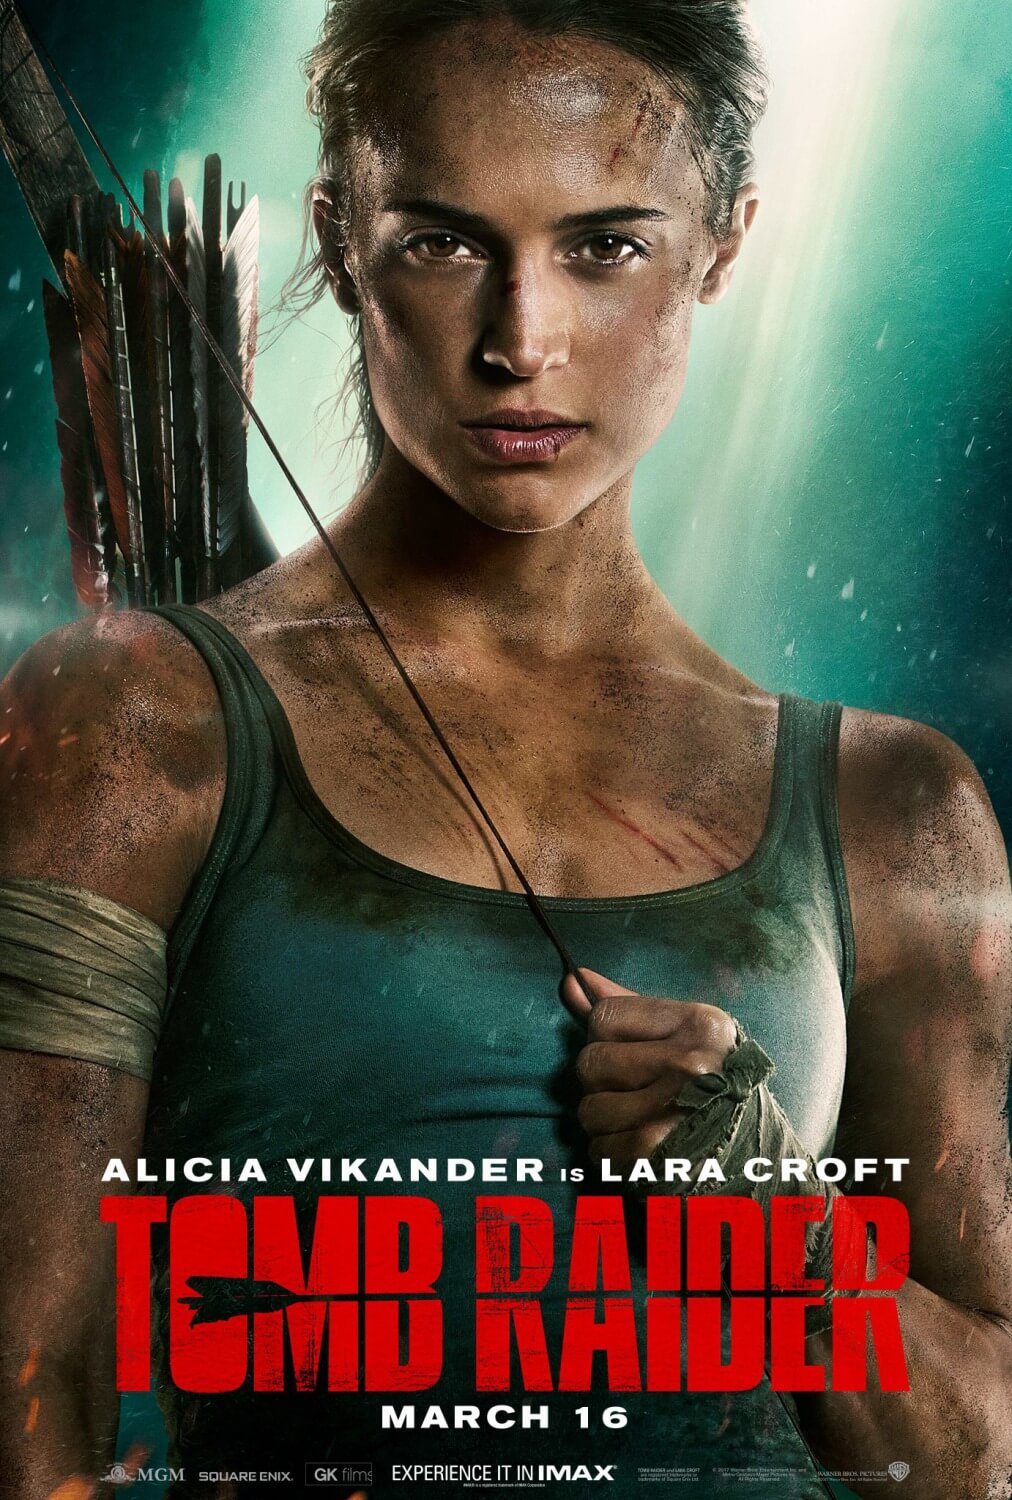 Tomb Raider (Roar Uthaug, 2018)